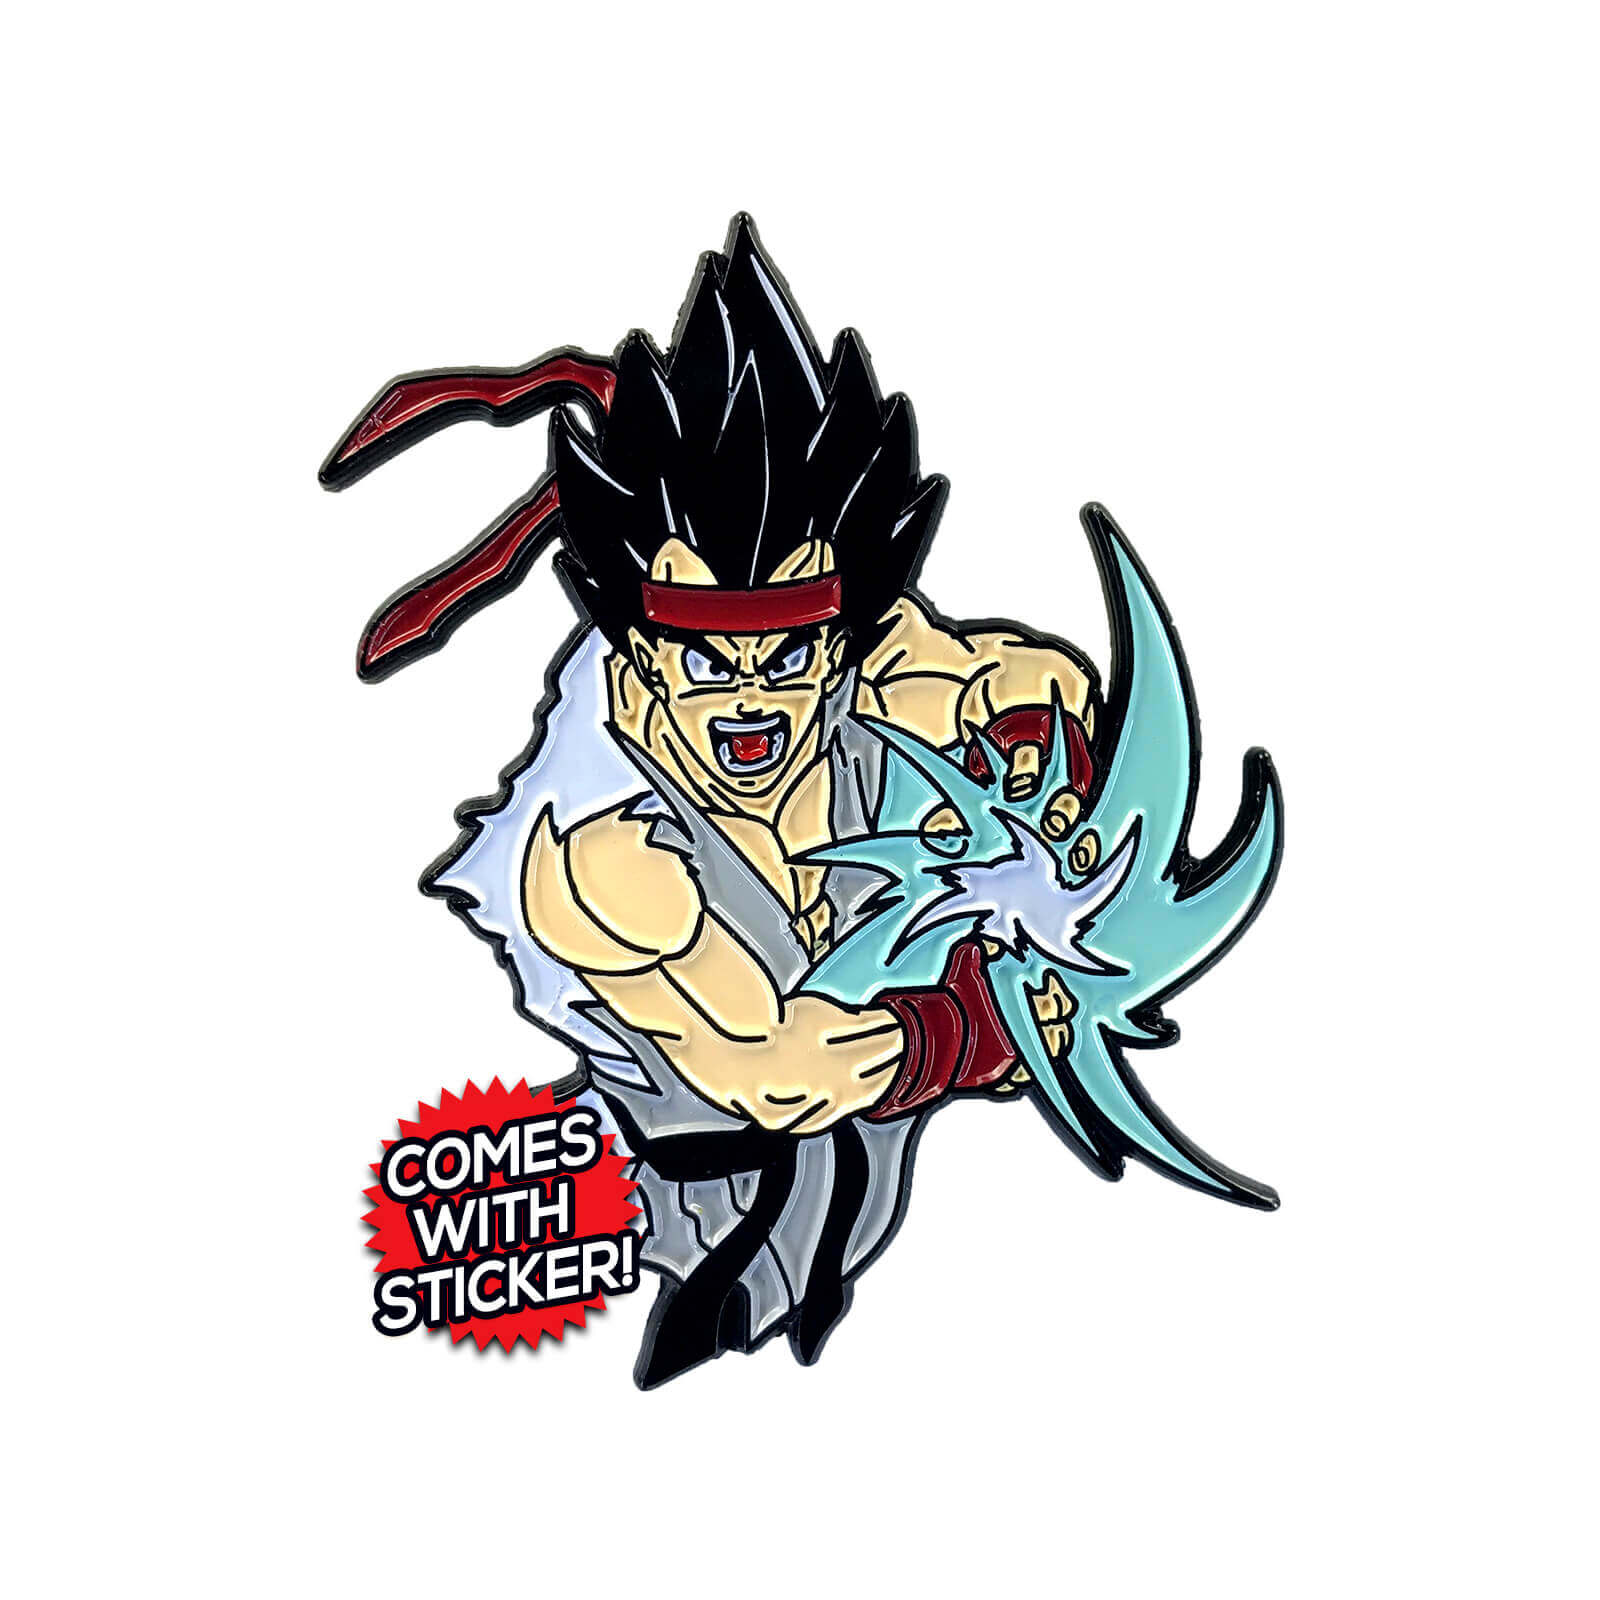 Rygeta (Street Fighter x Dragon Ball Z Mashup) Enamel Pin